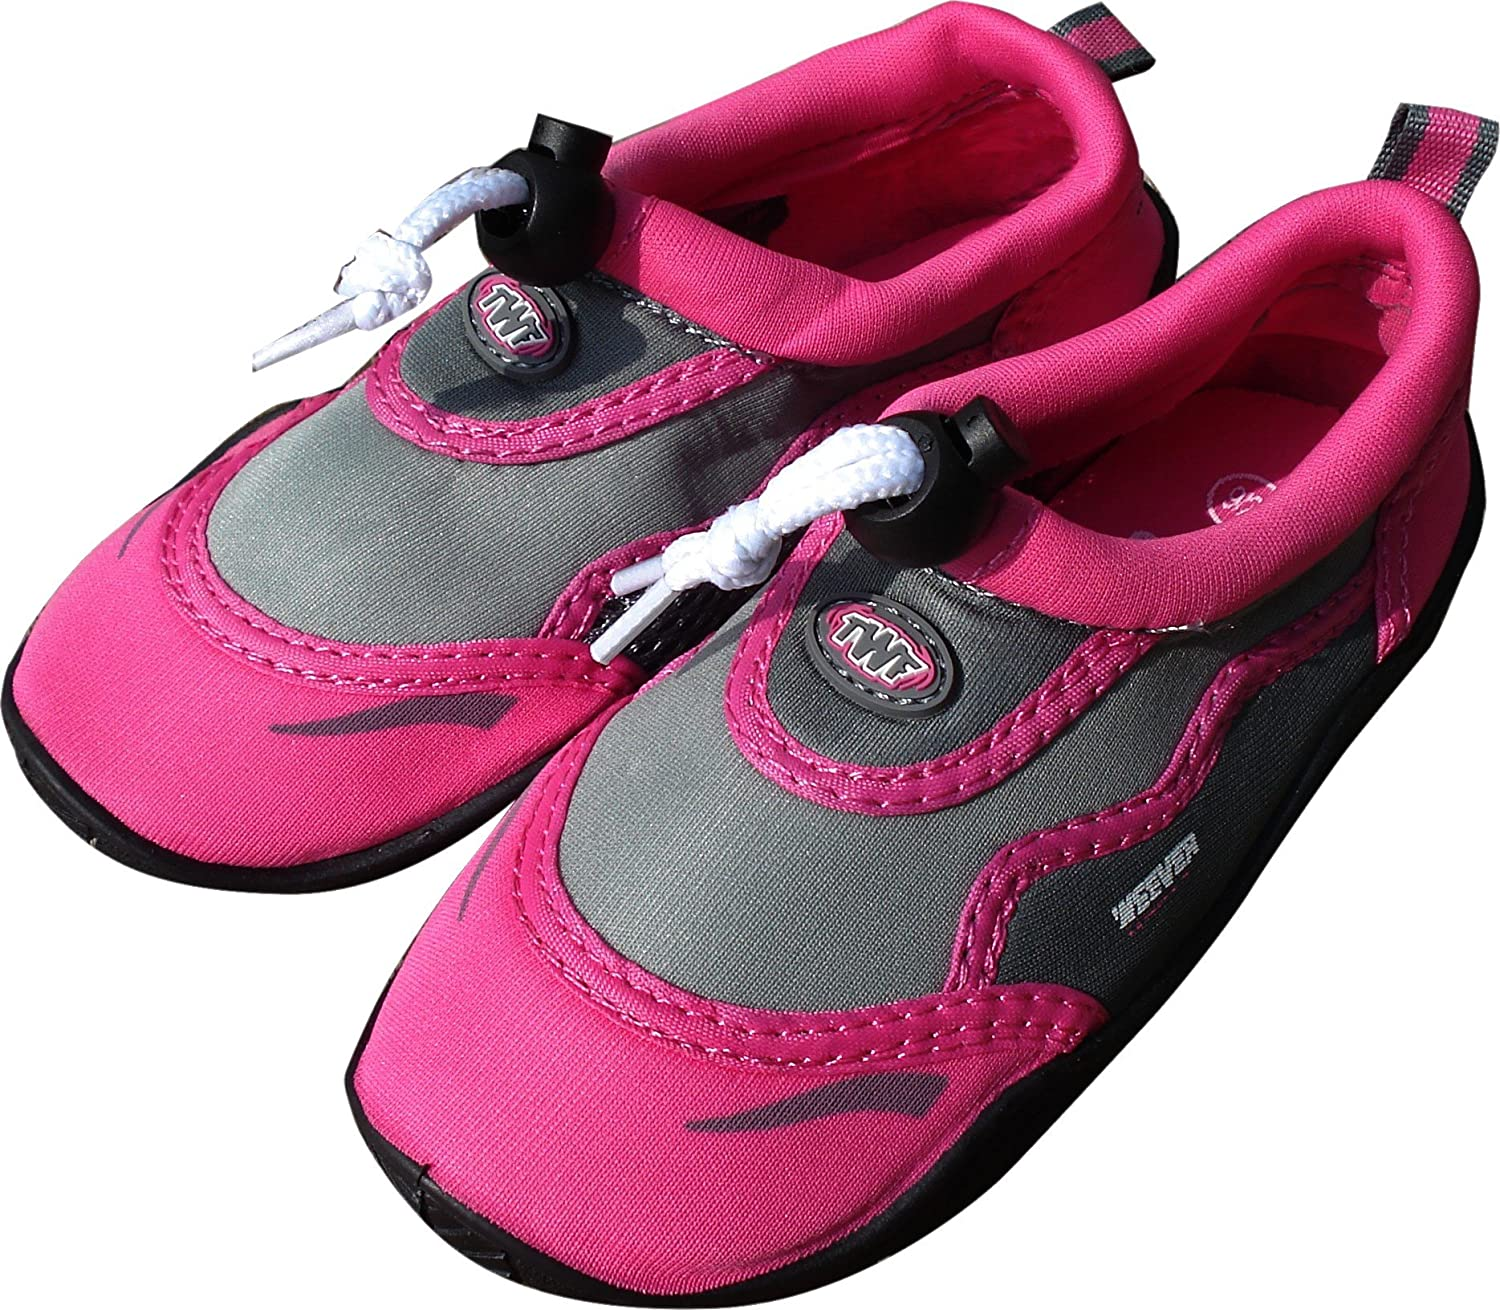 7abeaa3997d3cc TWF Children s Weever Wet Shoes  Amazon.co.uk  Sports   Outdoors